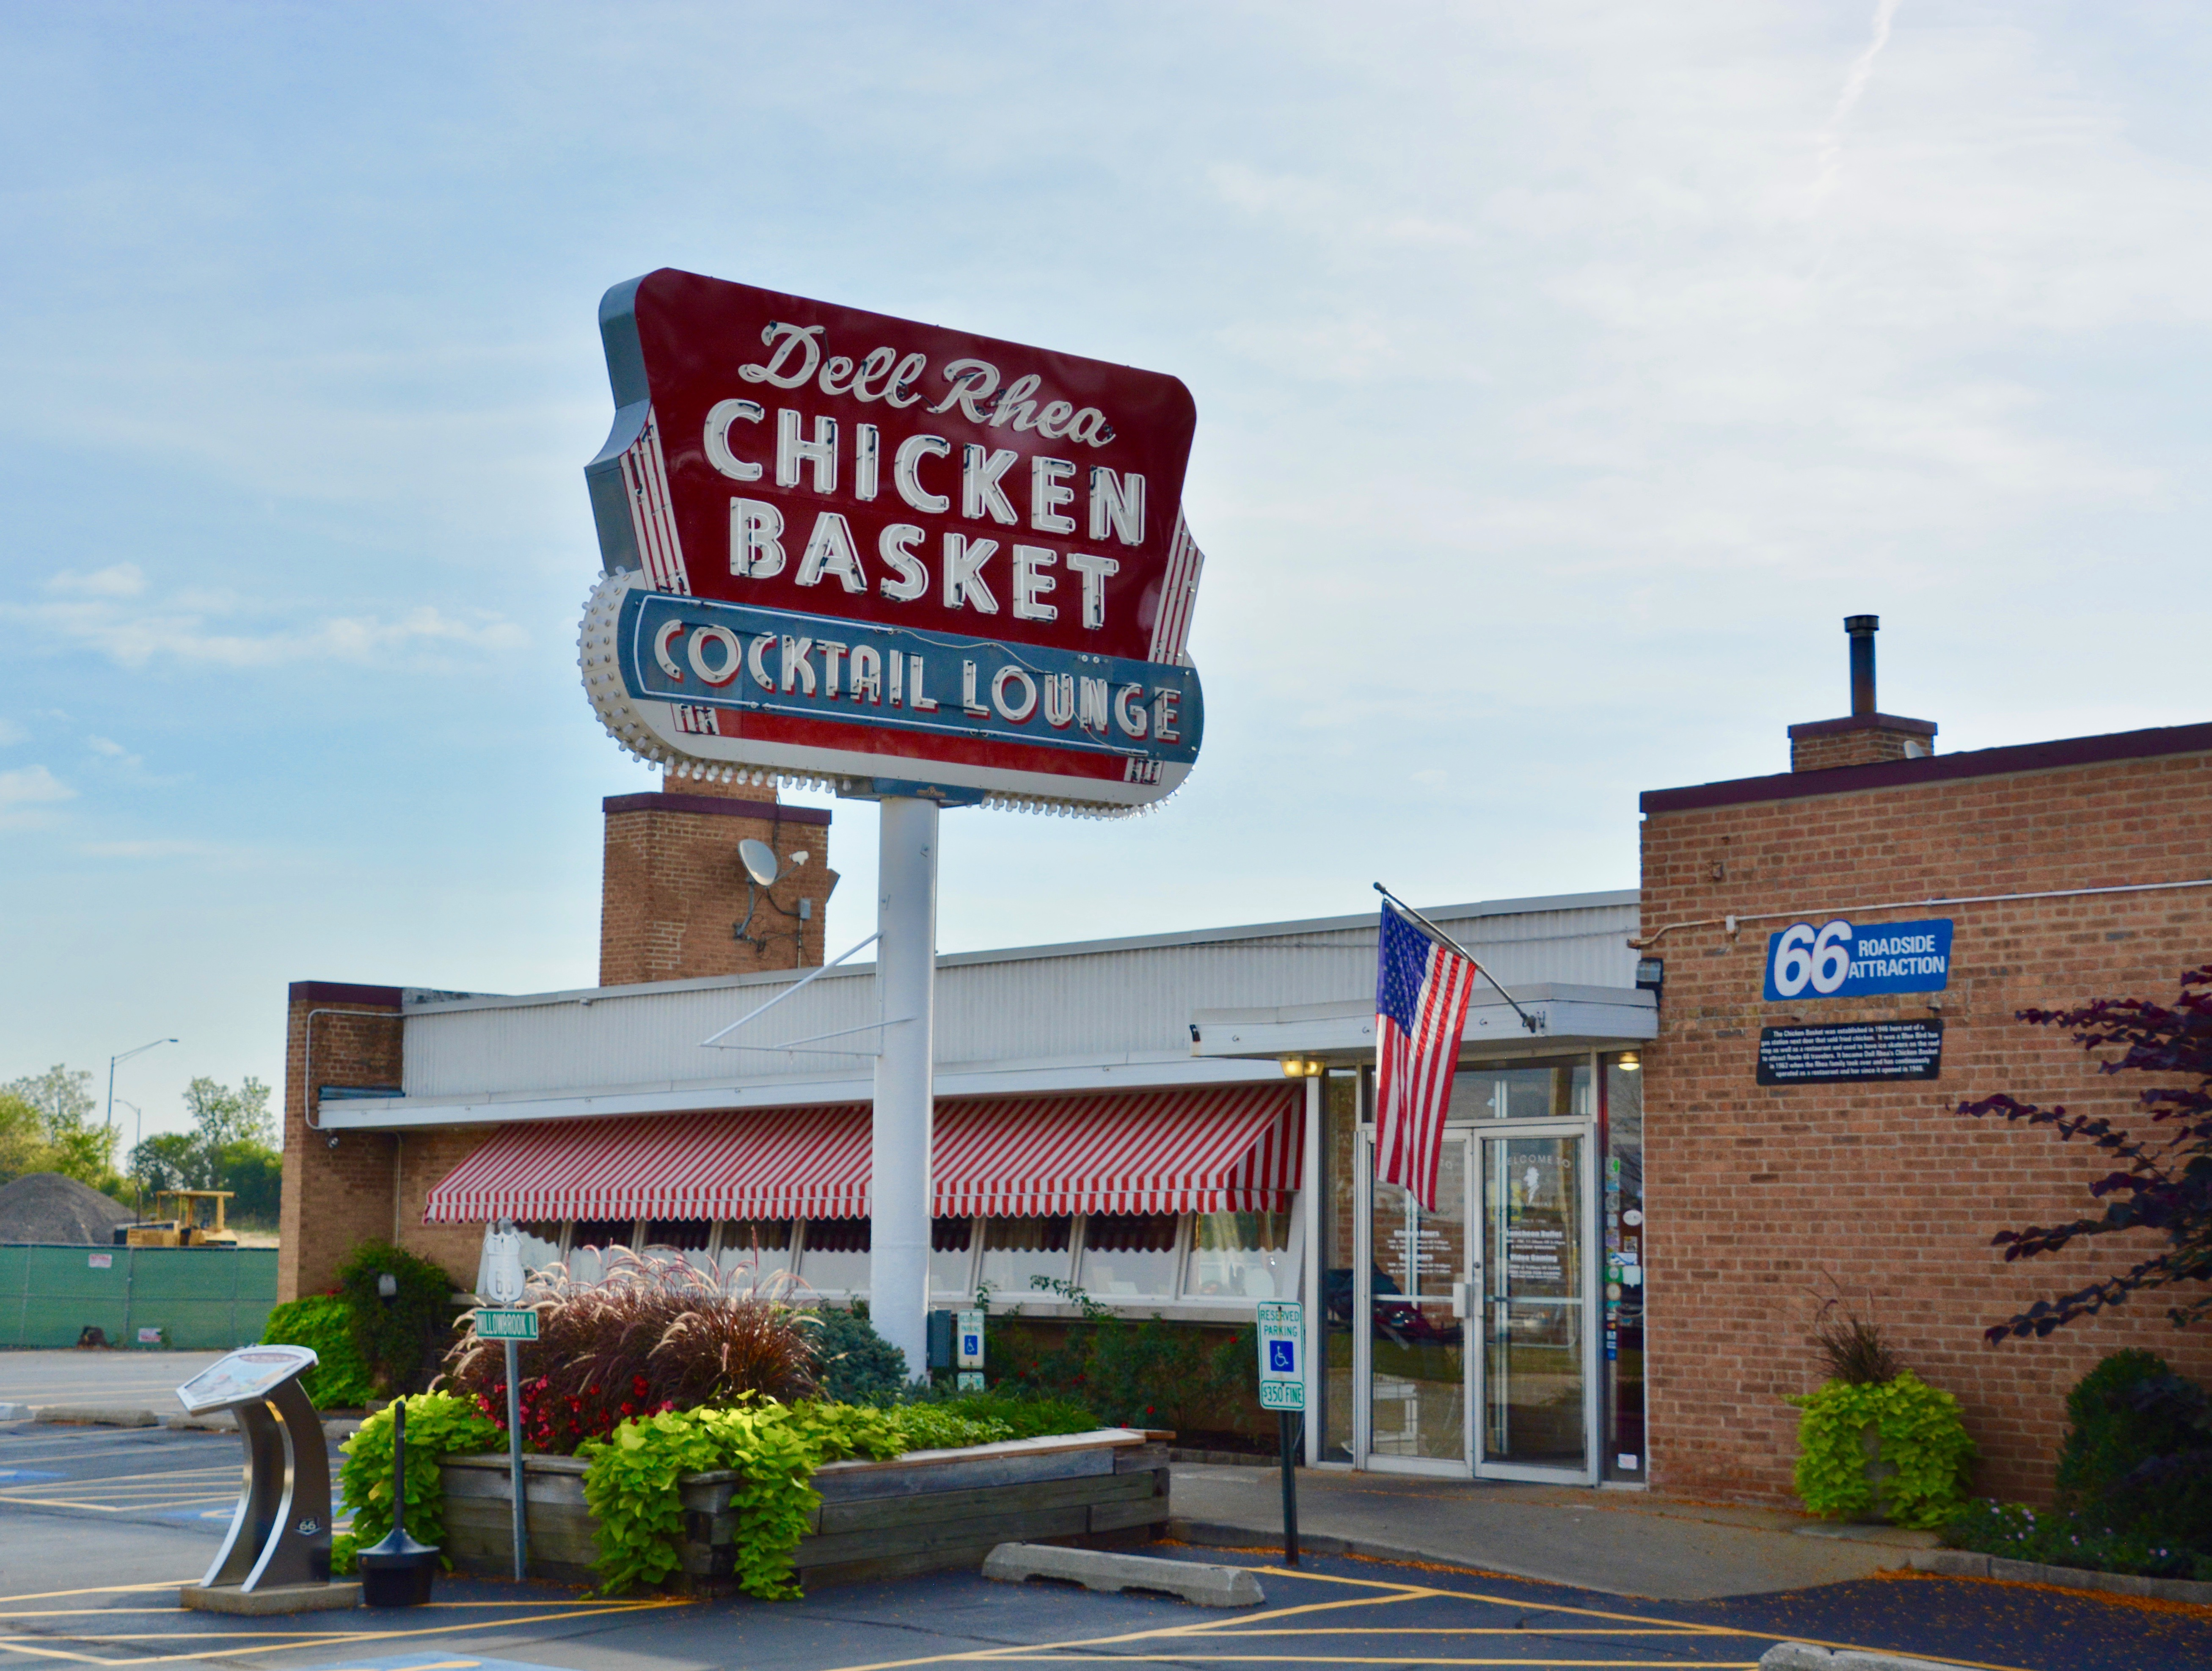 Dell Rhea's Chicken Basket